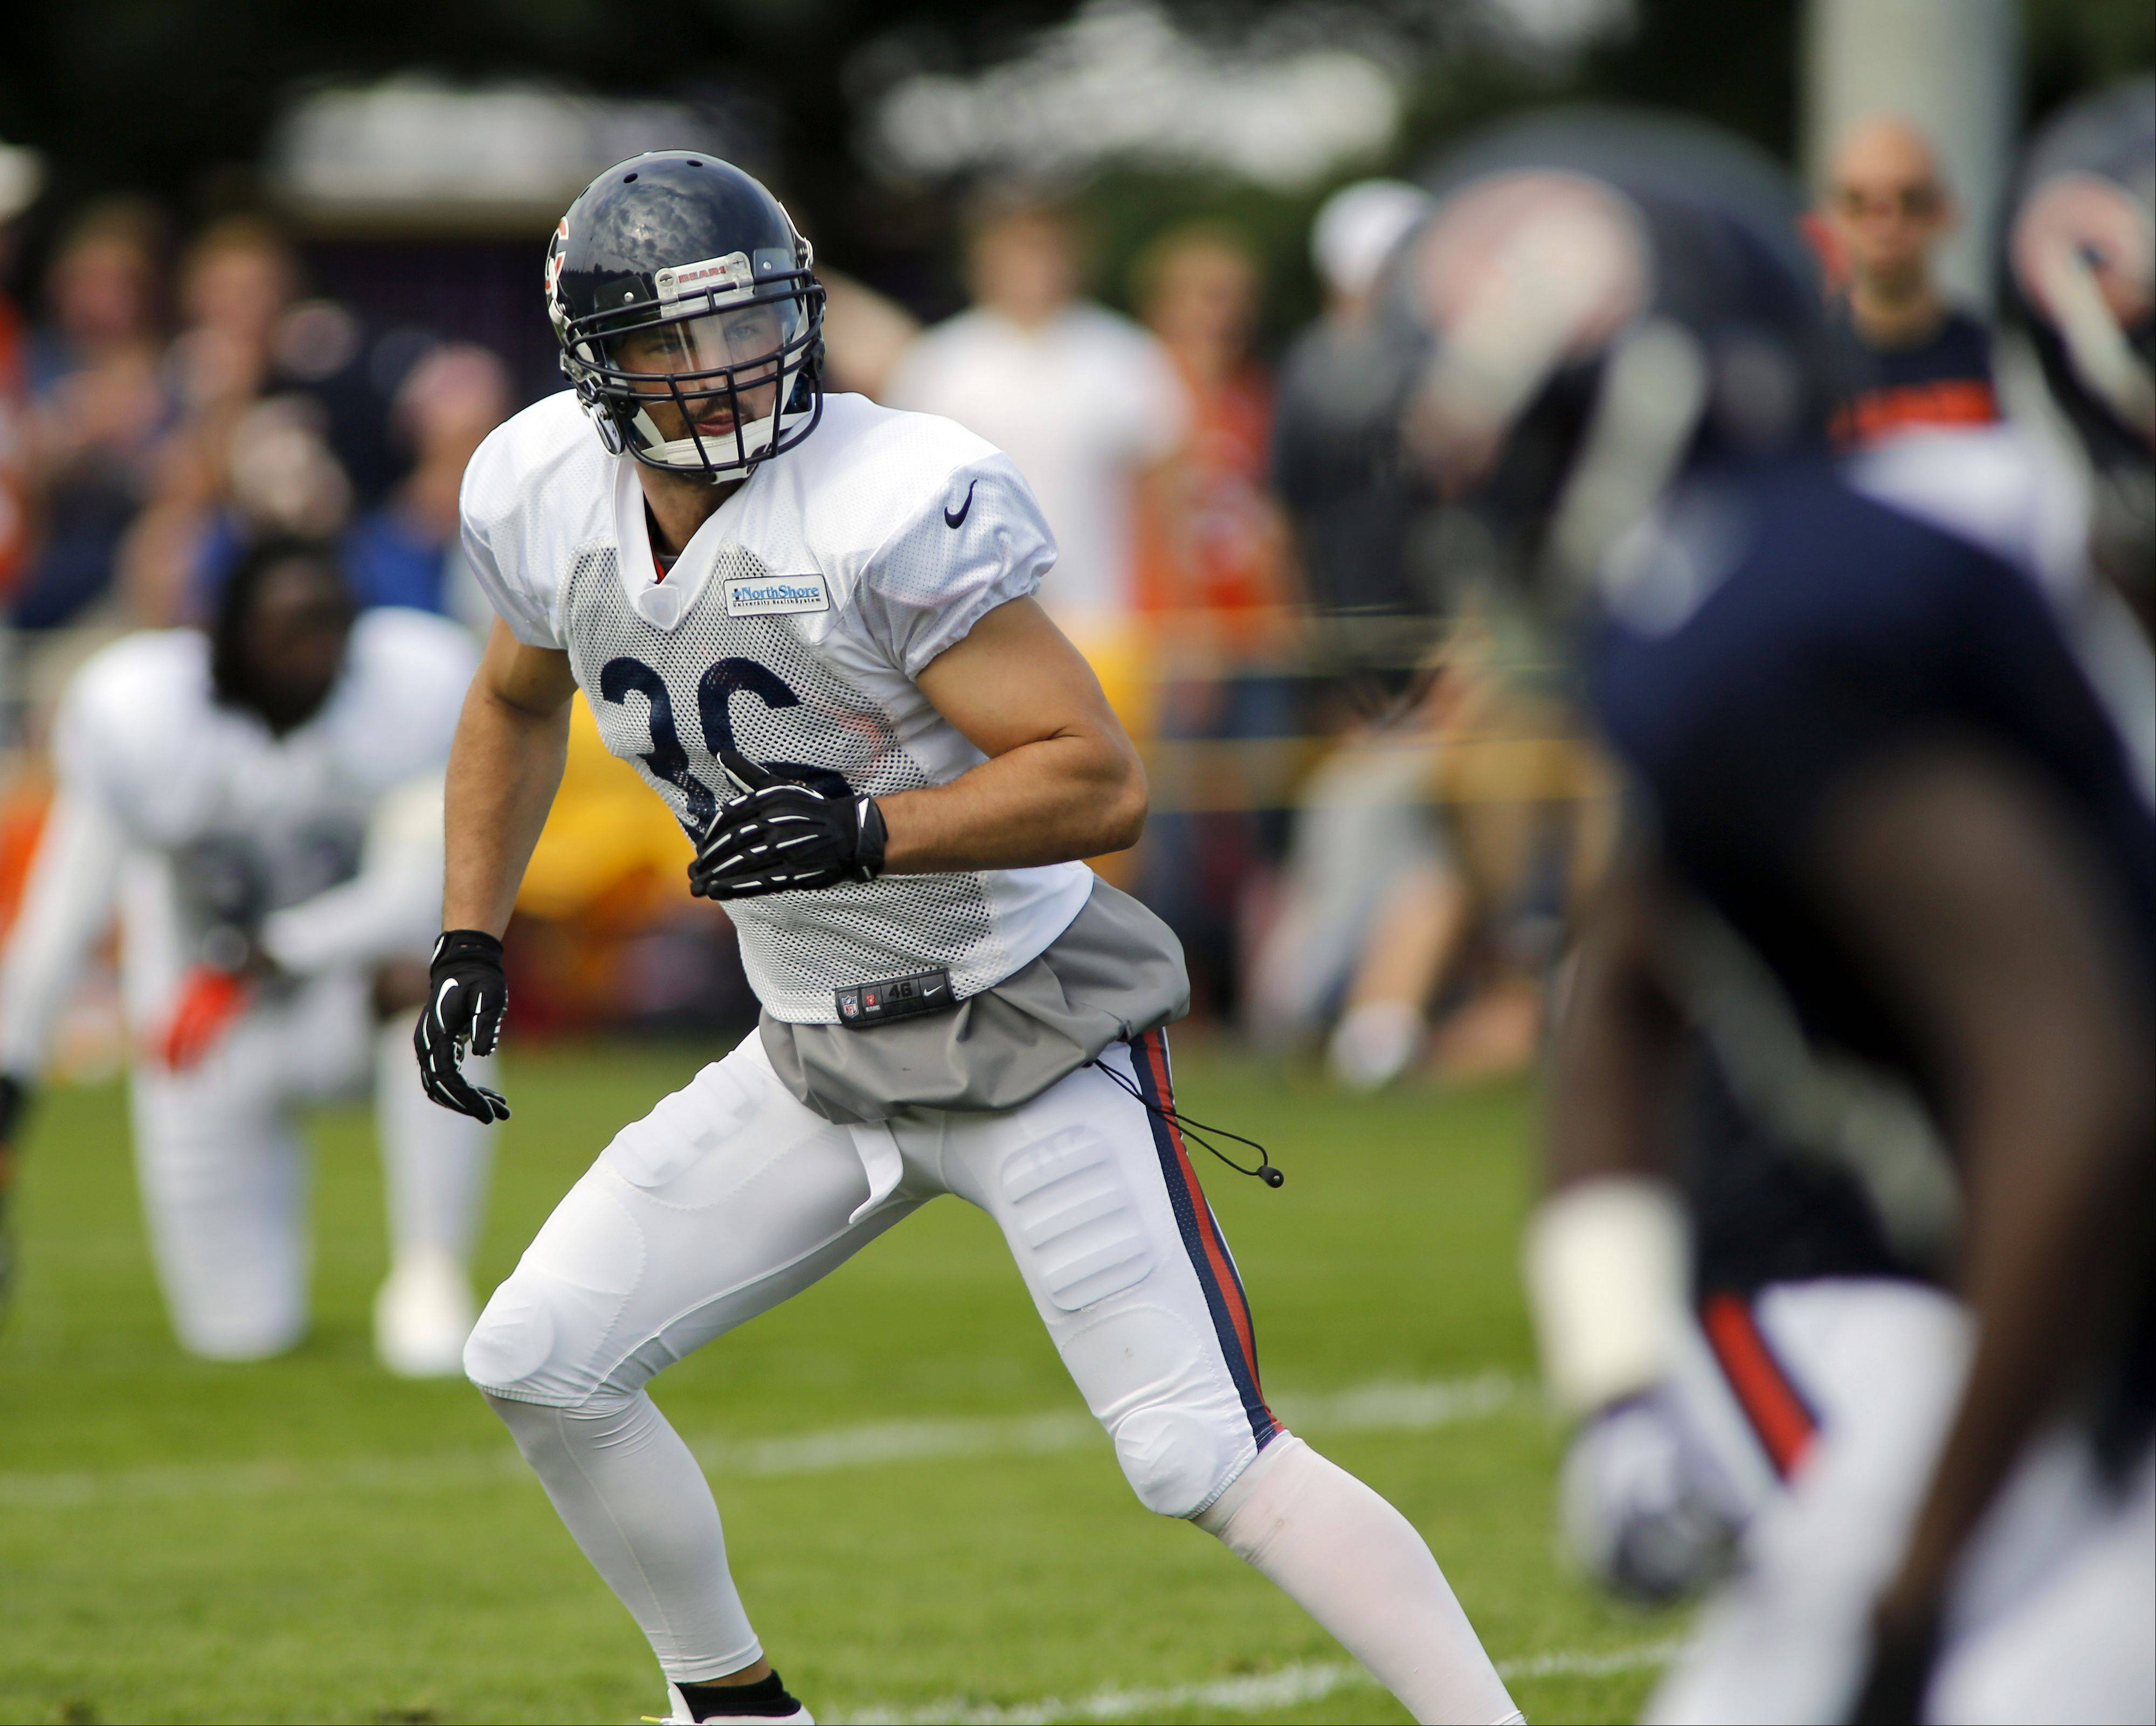 The Bears released veteran strong safety Tom Zbikowski (36) on Sunday, cutting the team's roster to 76. Zbikowski, a Buffalo Grove High School product who has played for Baltimore and Indianapolis, is free to sign with other NFL teams.